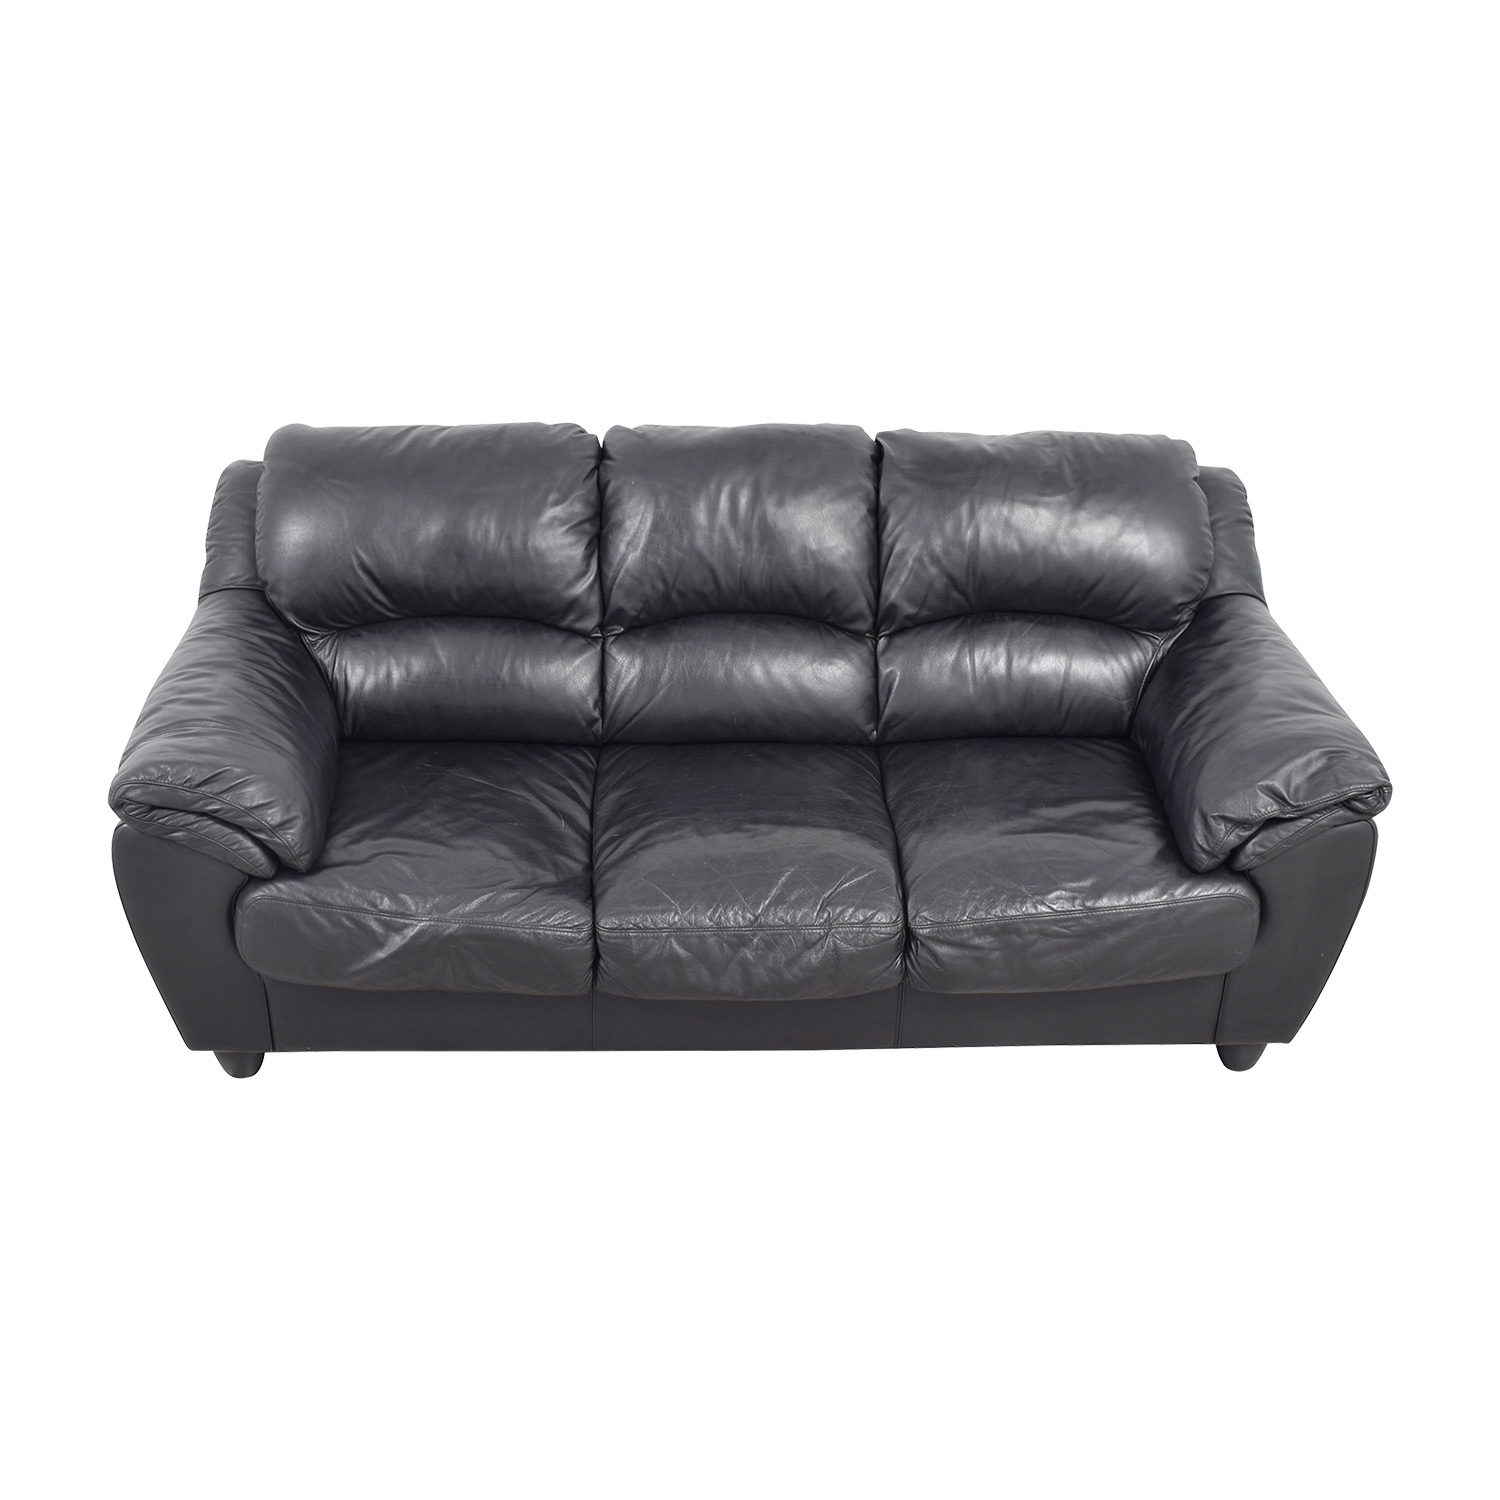 shop Raymour & Flanigan Black Leather Couch Raymour & Flanigan Classic Sofas